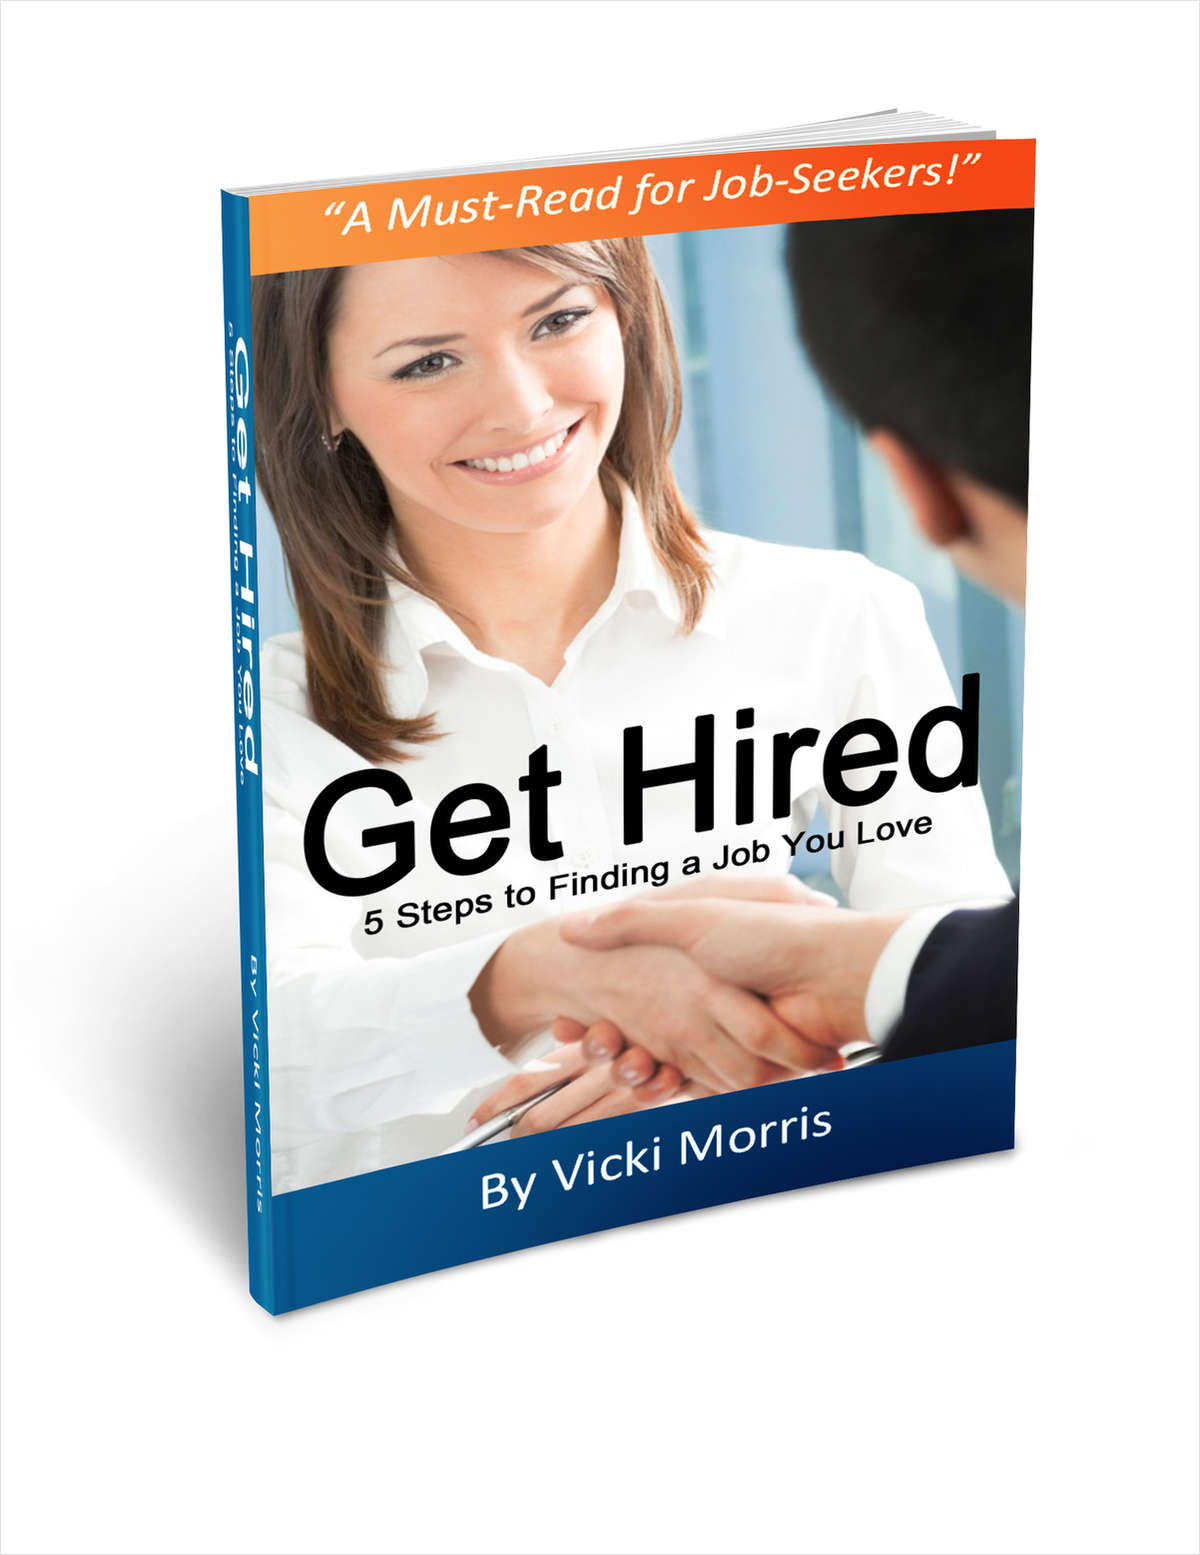 Get Hired: 5 Steps to Finding a Job You Love